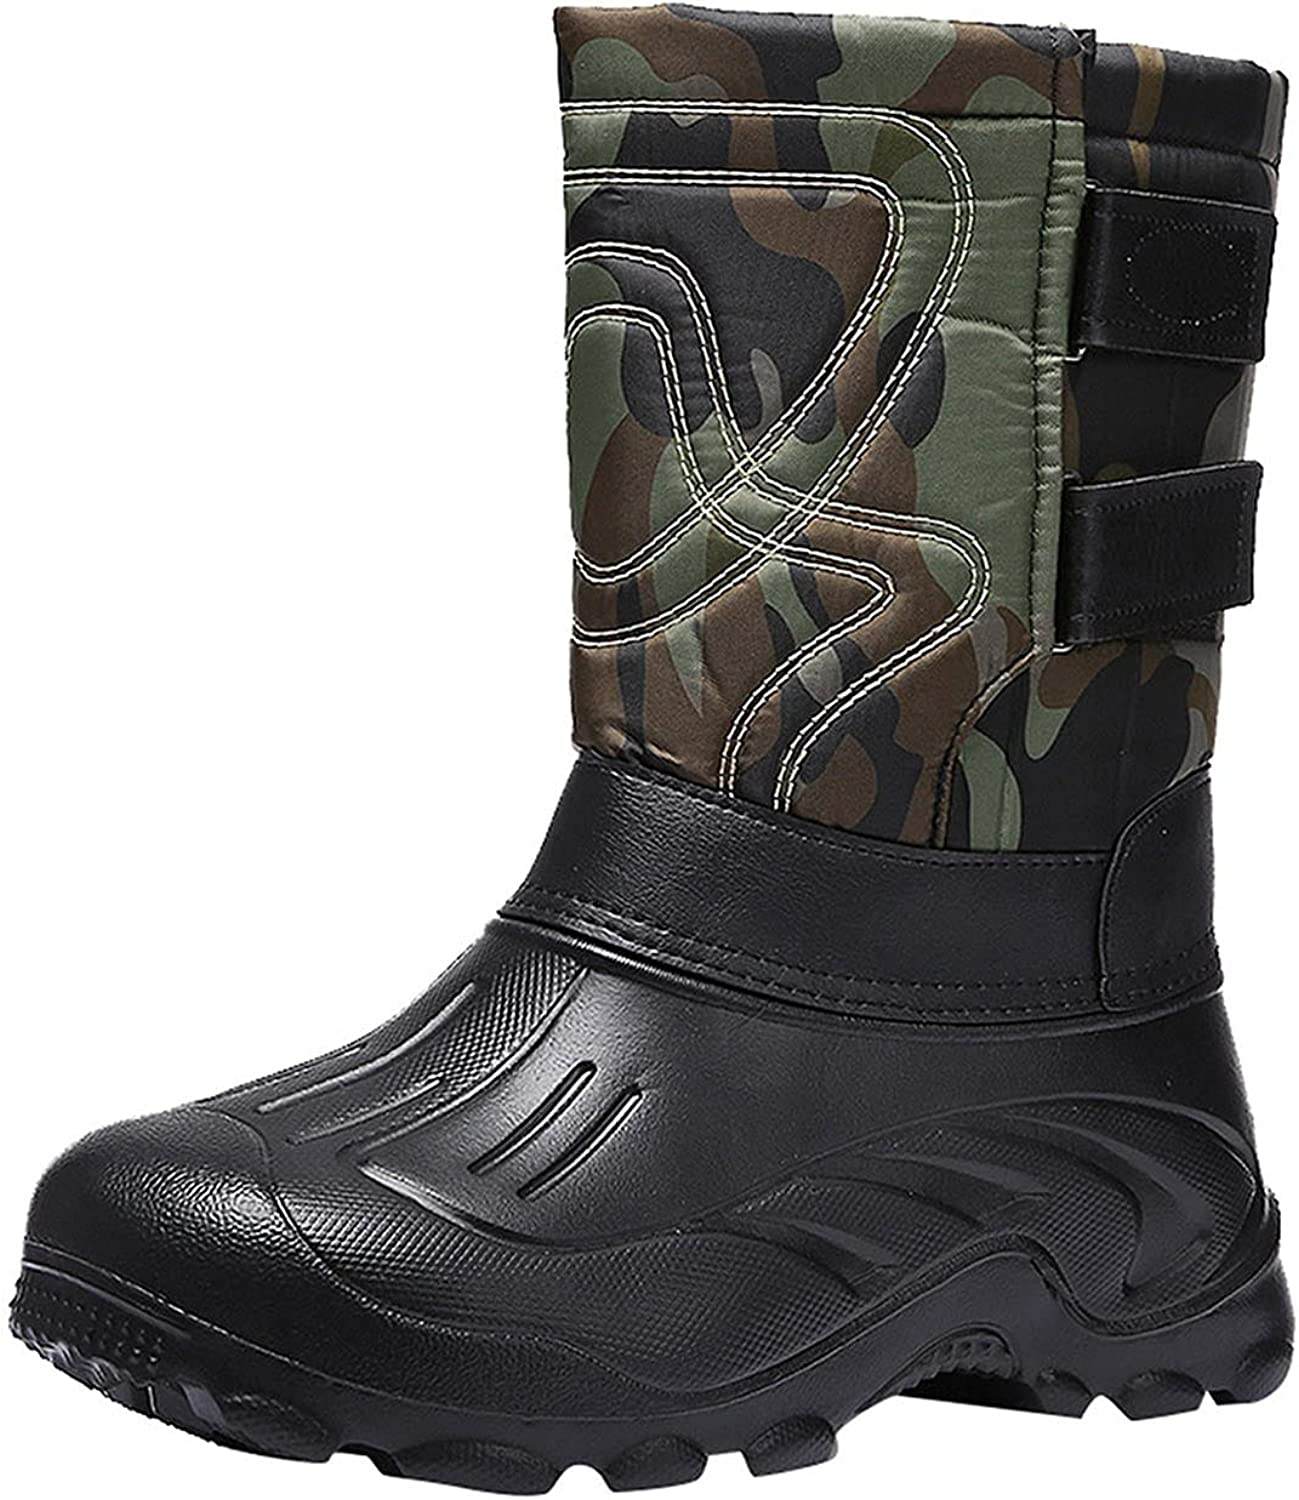 Men's Al sold out. Hiking Snow Boots Waterproof Winter Limited time sale Bo Lined Fur Insulated